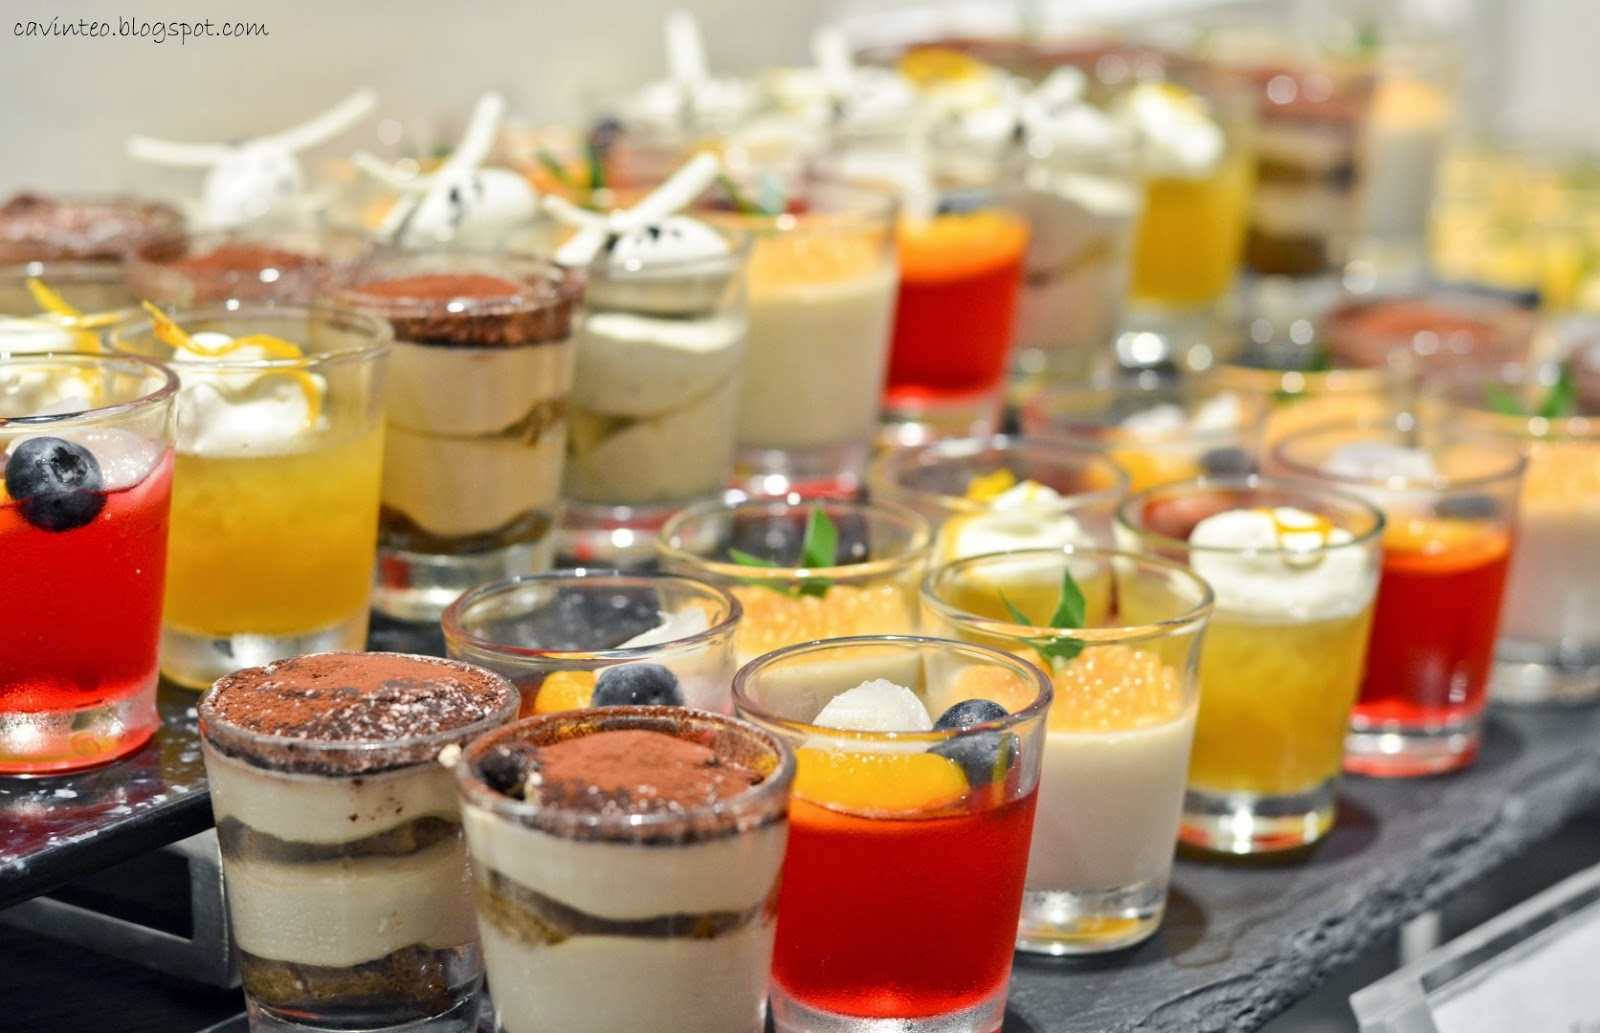 ... Thai sticky rice with mango, kueh lapis, dessert shooters and even